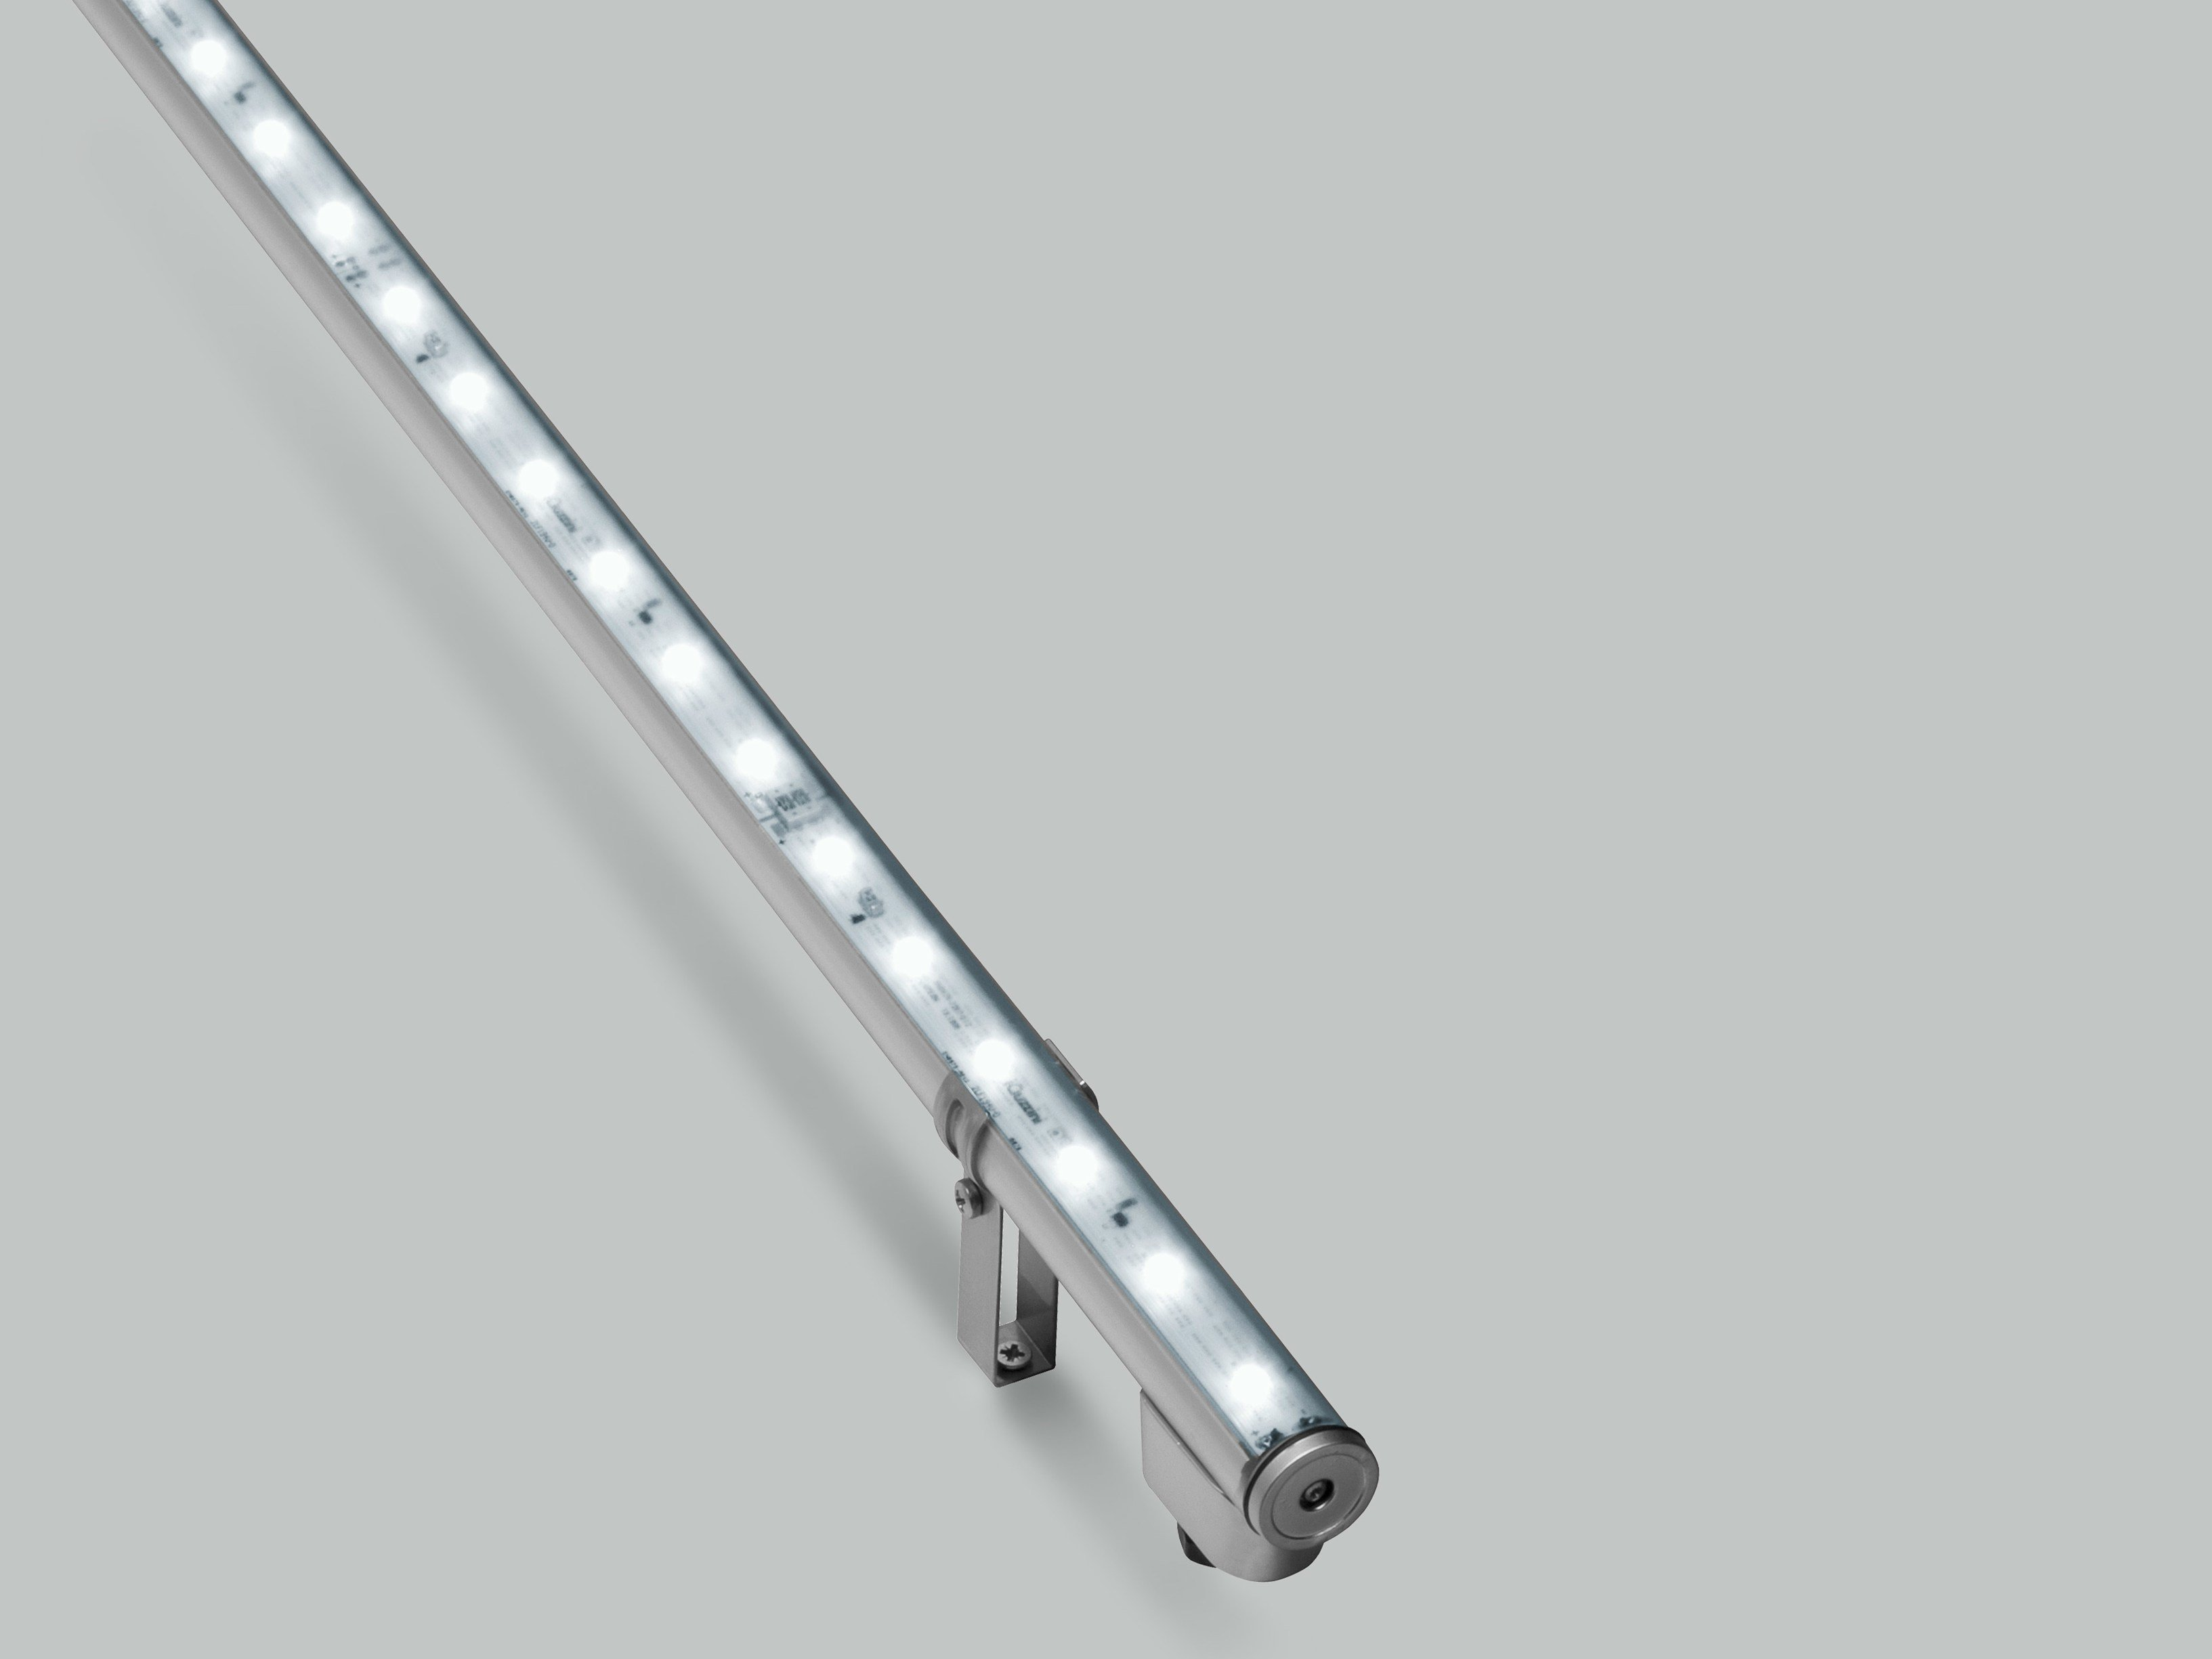 Ceiling mounted lighting profile for LED modules LED TUBE by iGuzzini Illuminazione -> Illuminazione A Led Lampadari